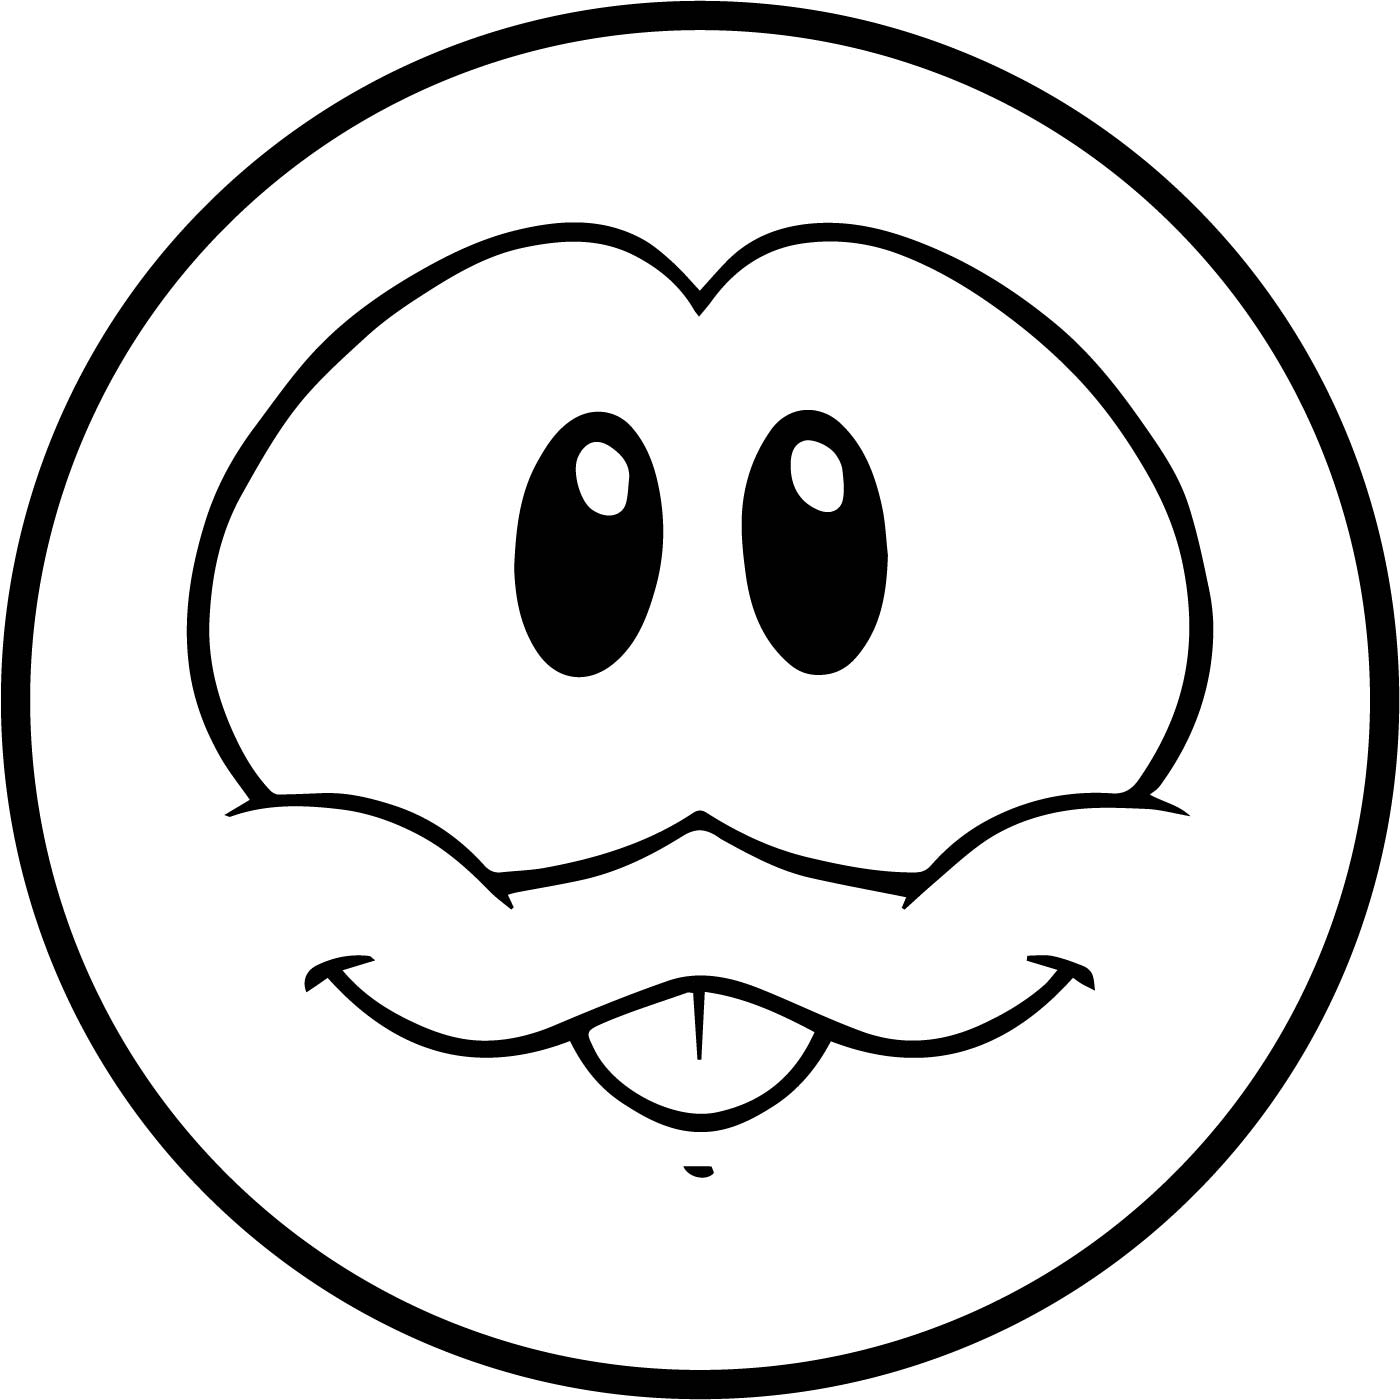 Cute circle club penguin coloring page for Cute penguin coloring pages